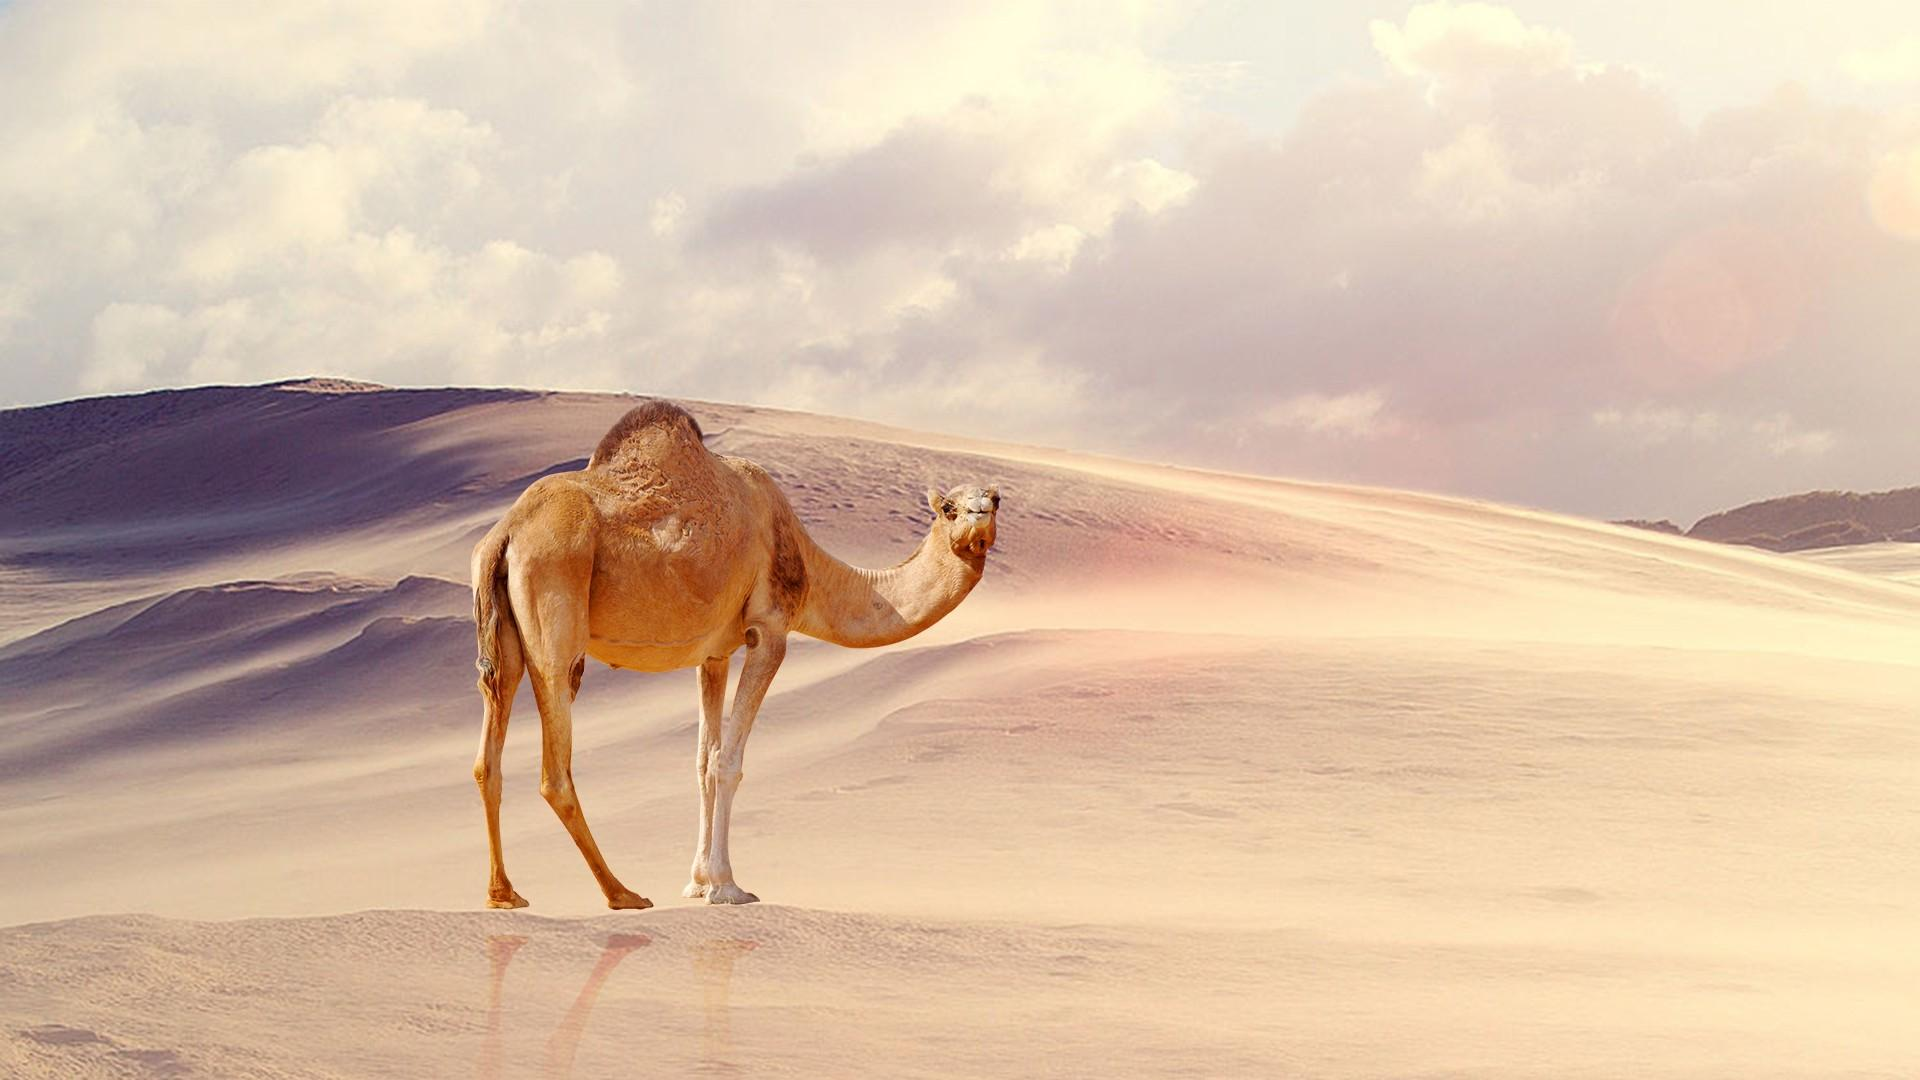 Camel Wallpapers HD Backgrounds, Image, Pics, Photos Free Download